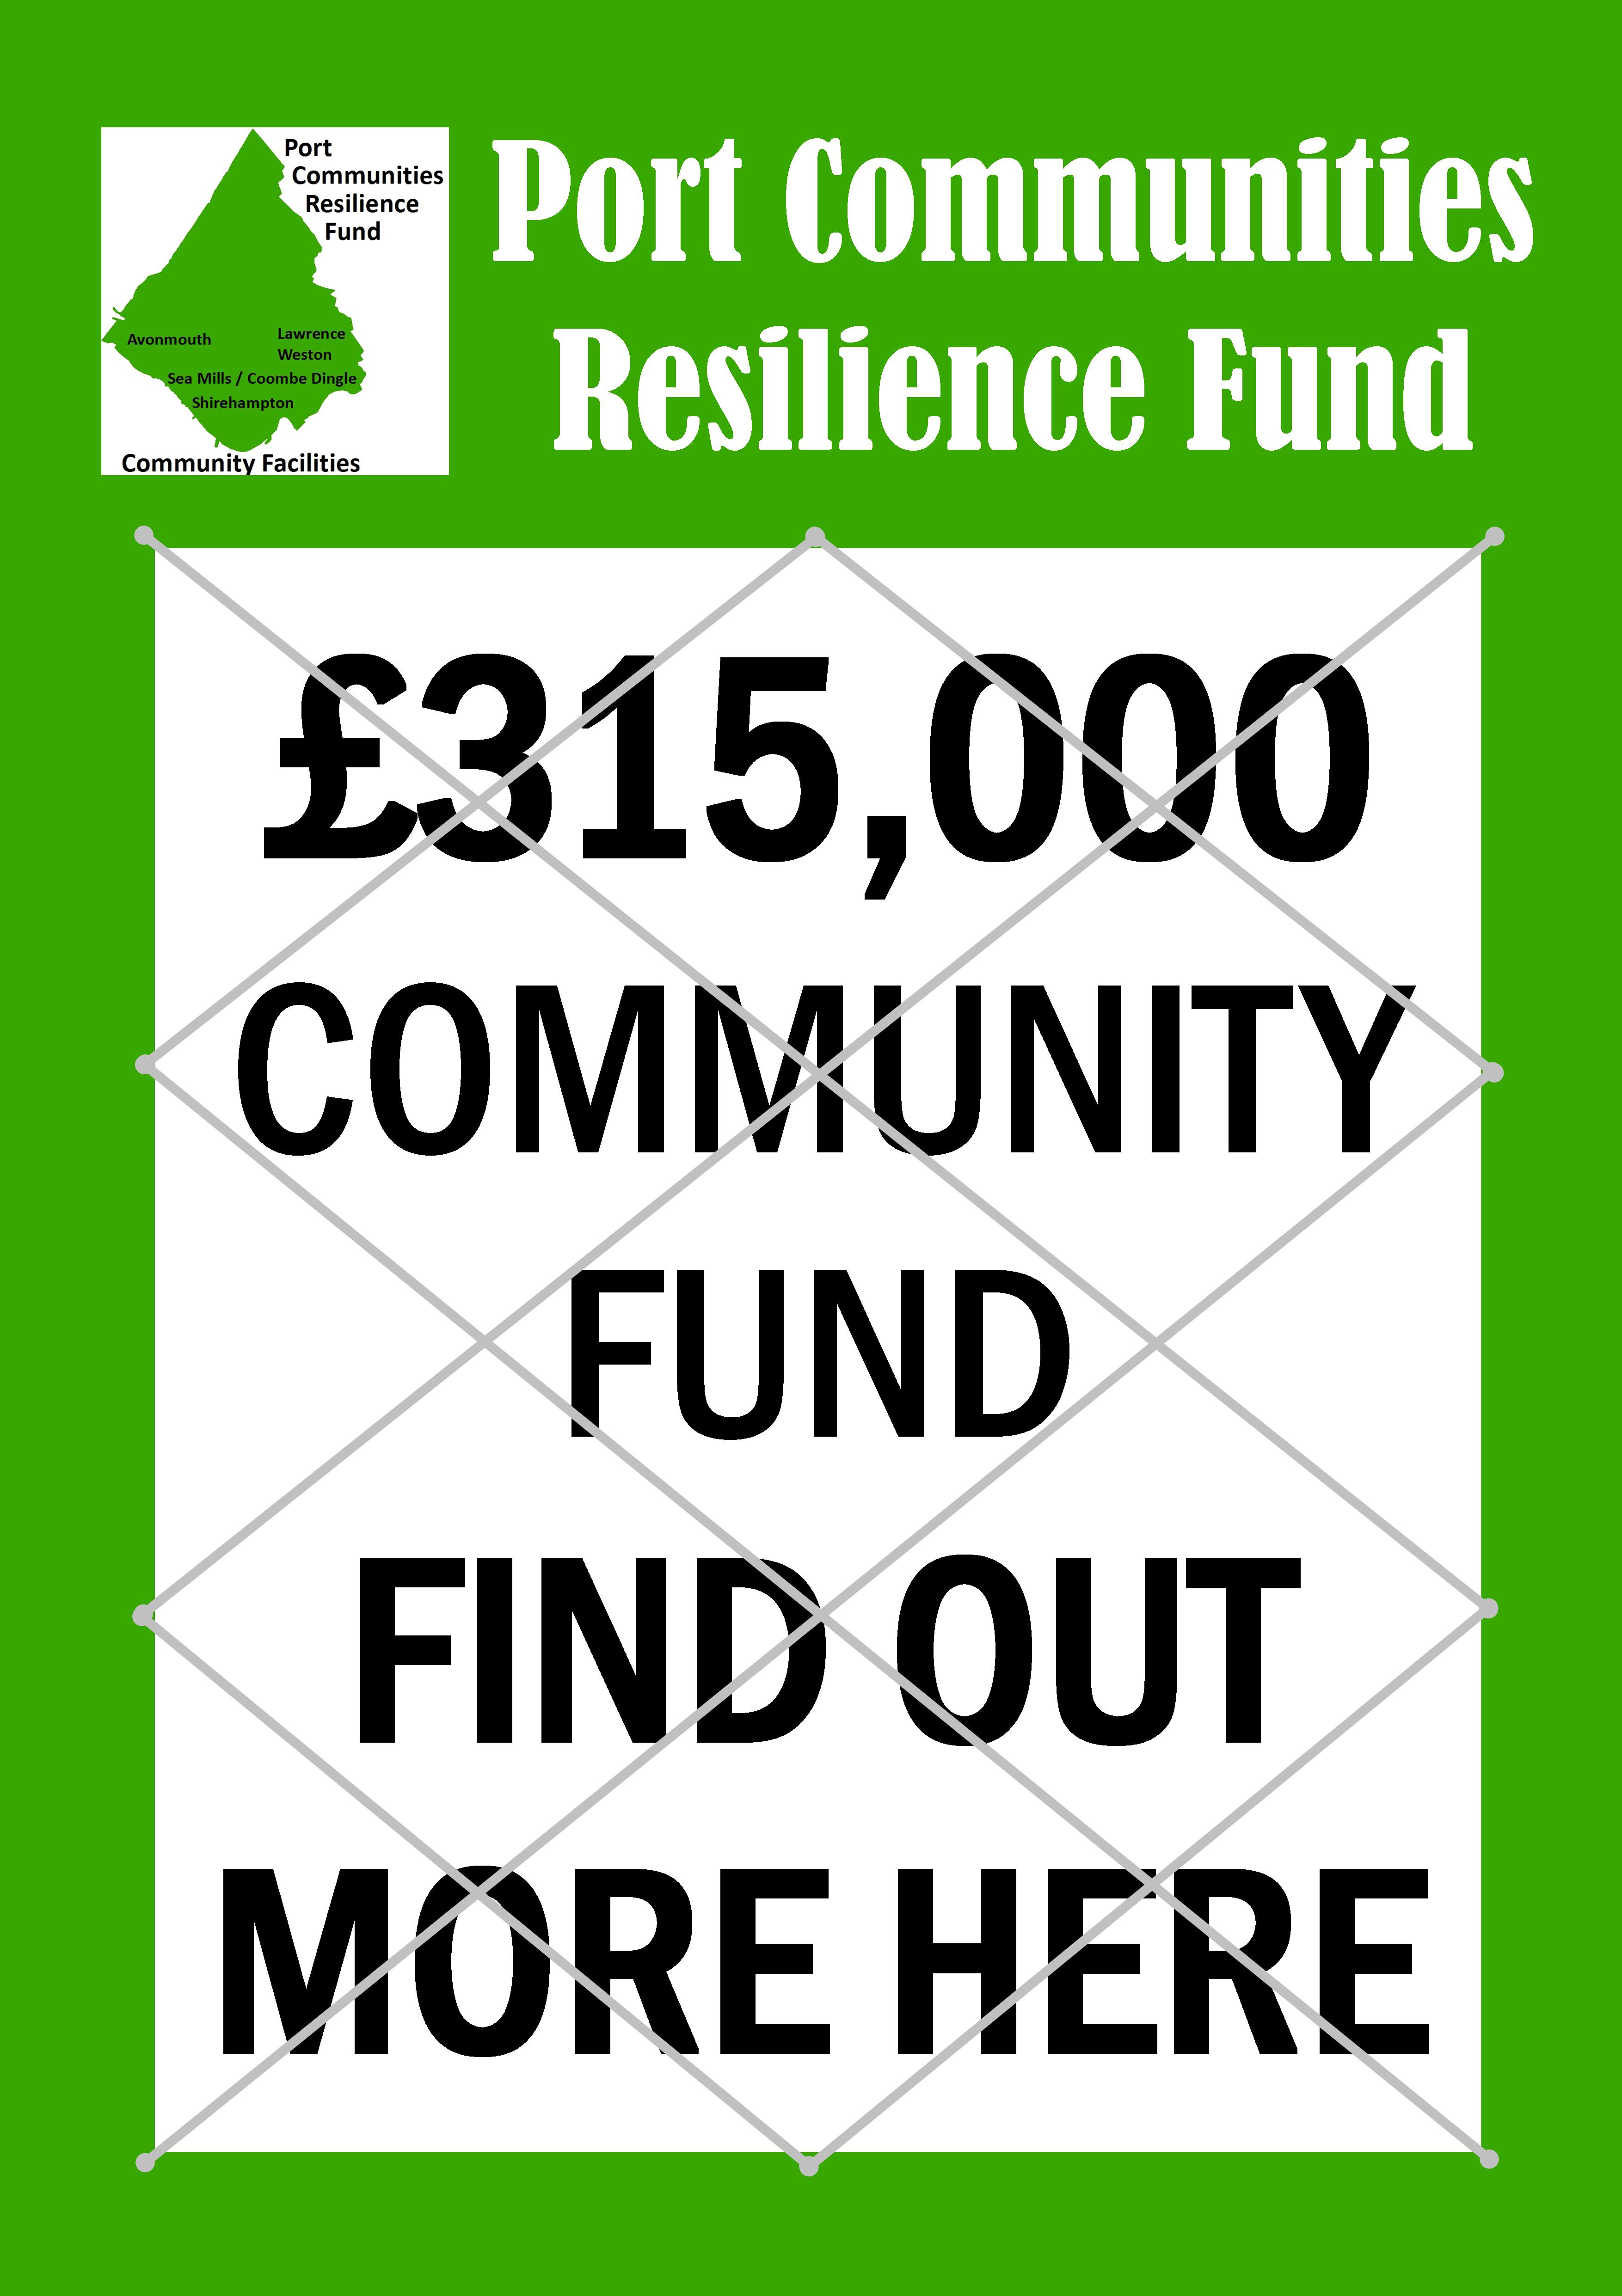 Find out more about the £315,000 Community Facilities grants